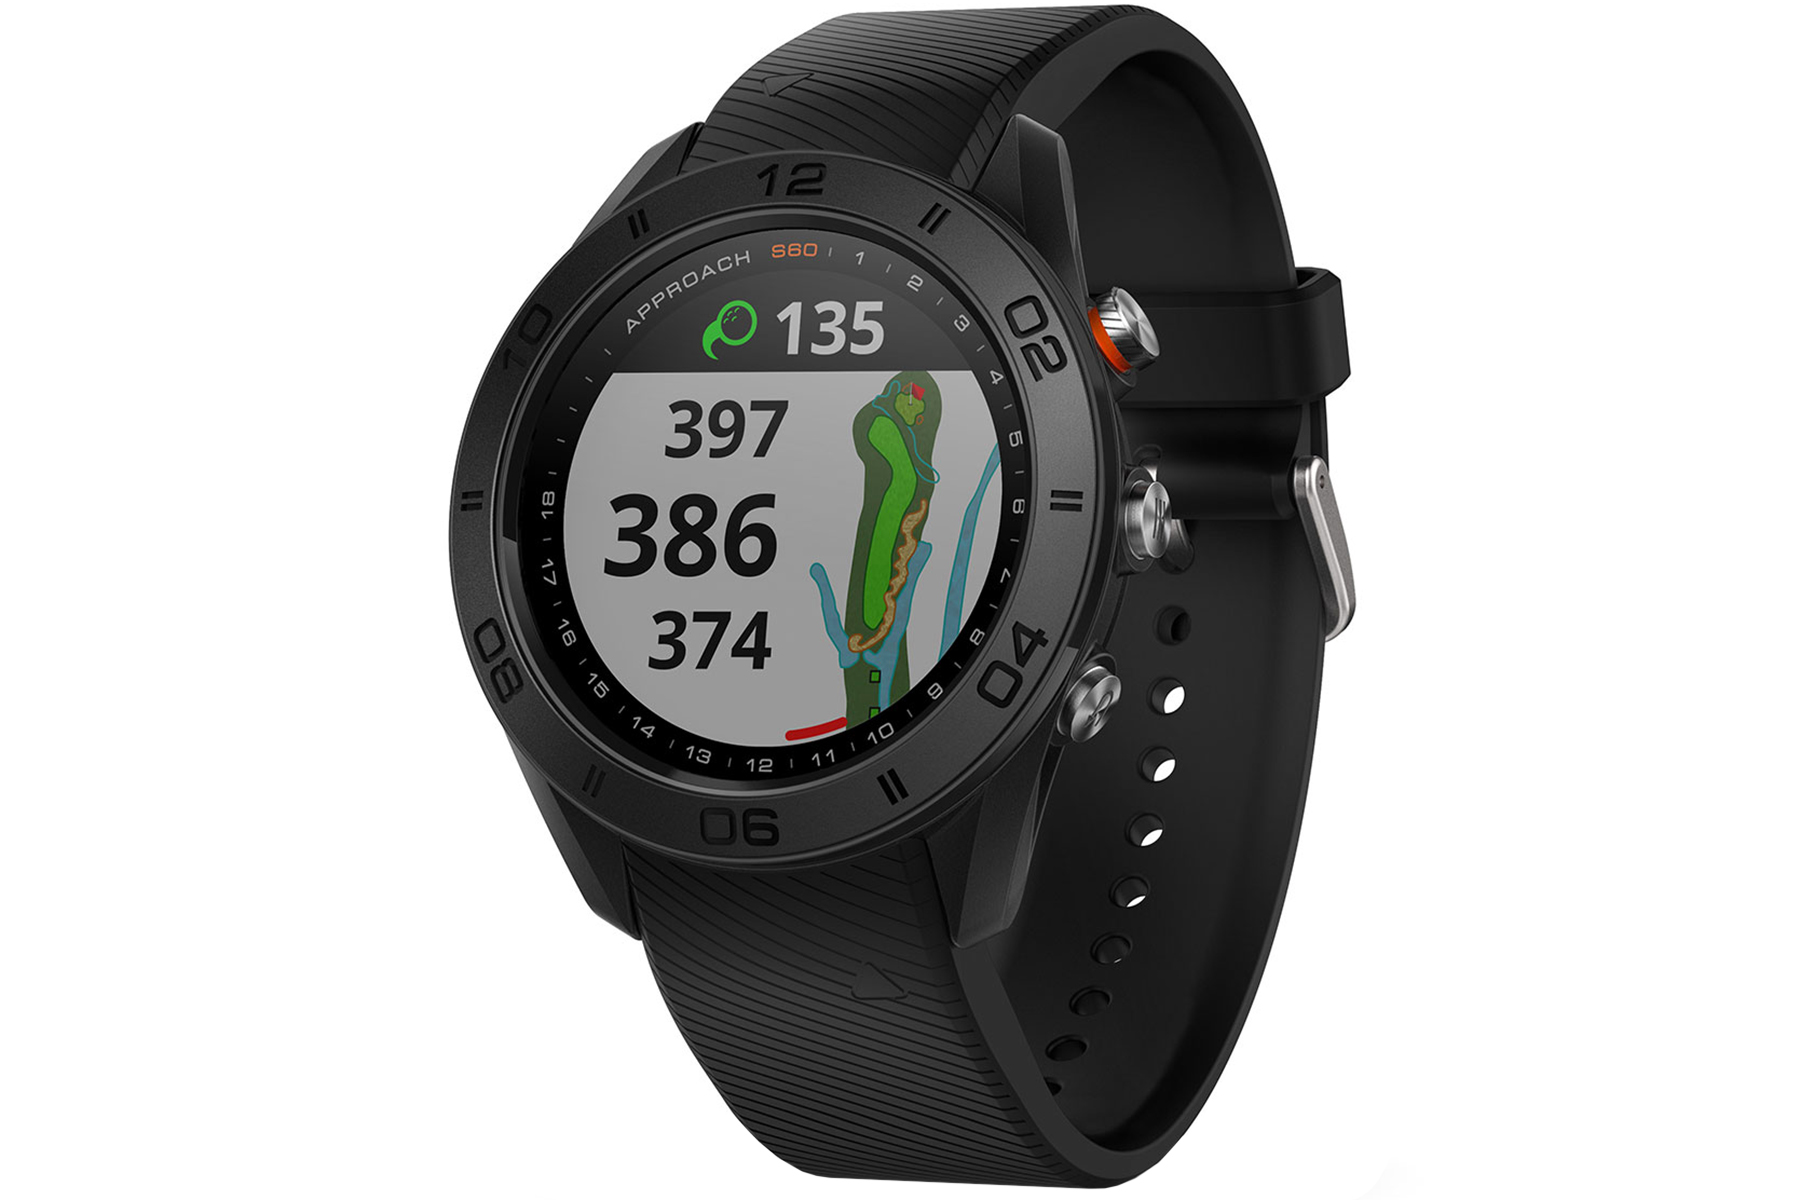 garmin approach s60 gps watch from american golf. Black Bedroom Furniture Sets. Home Design Ideas